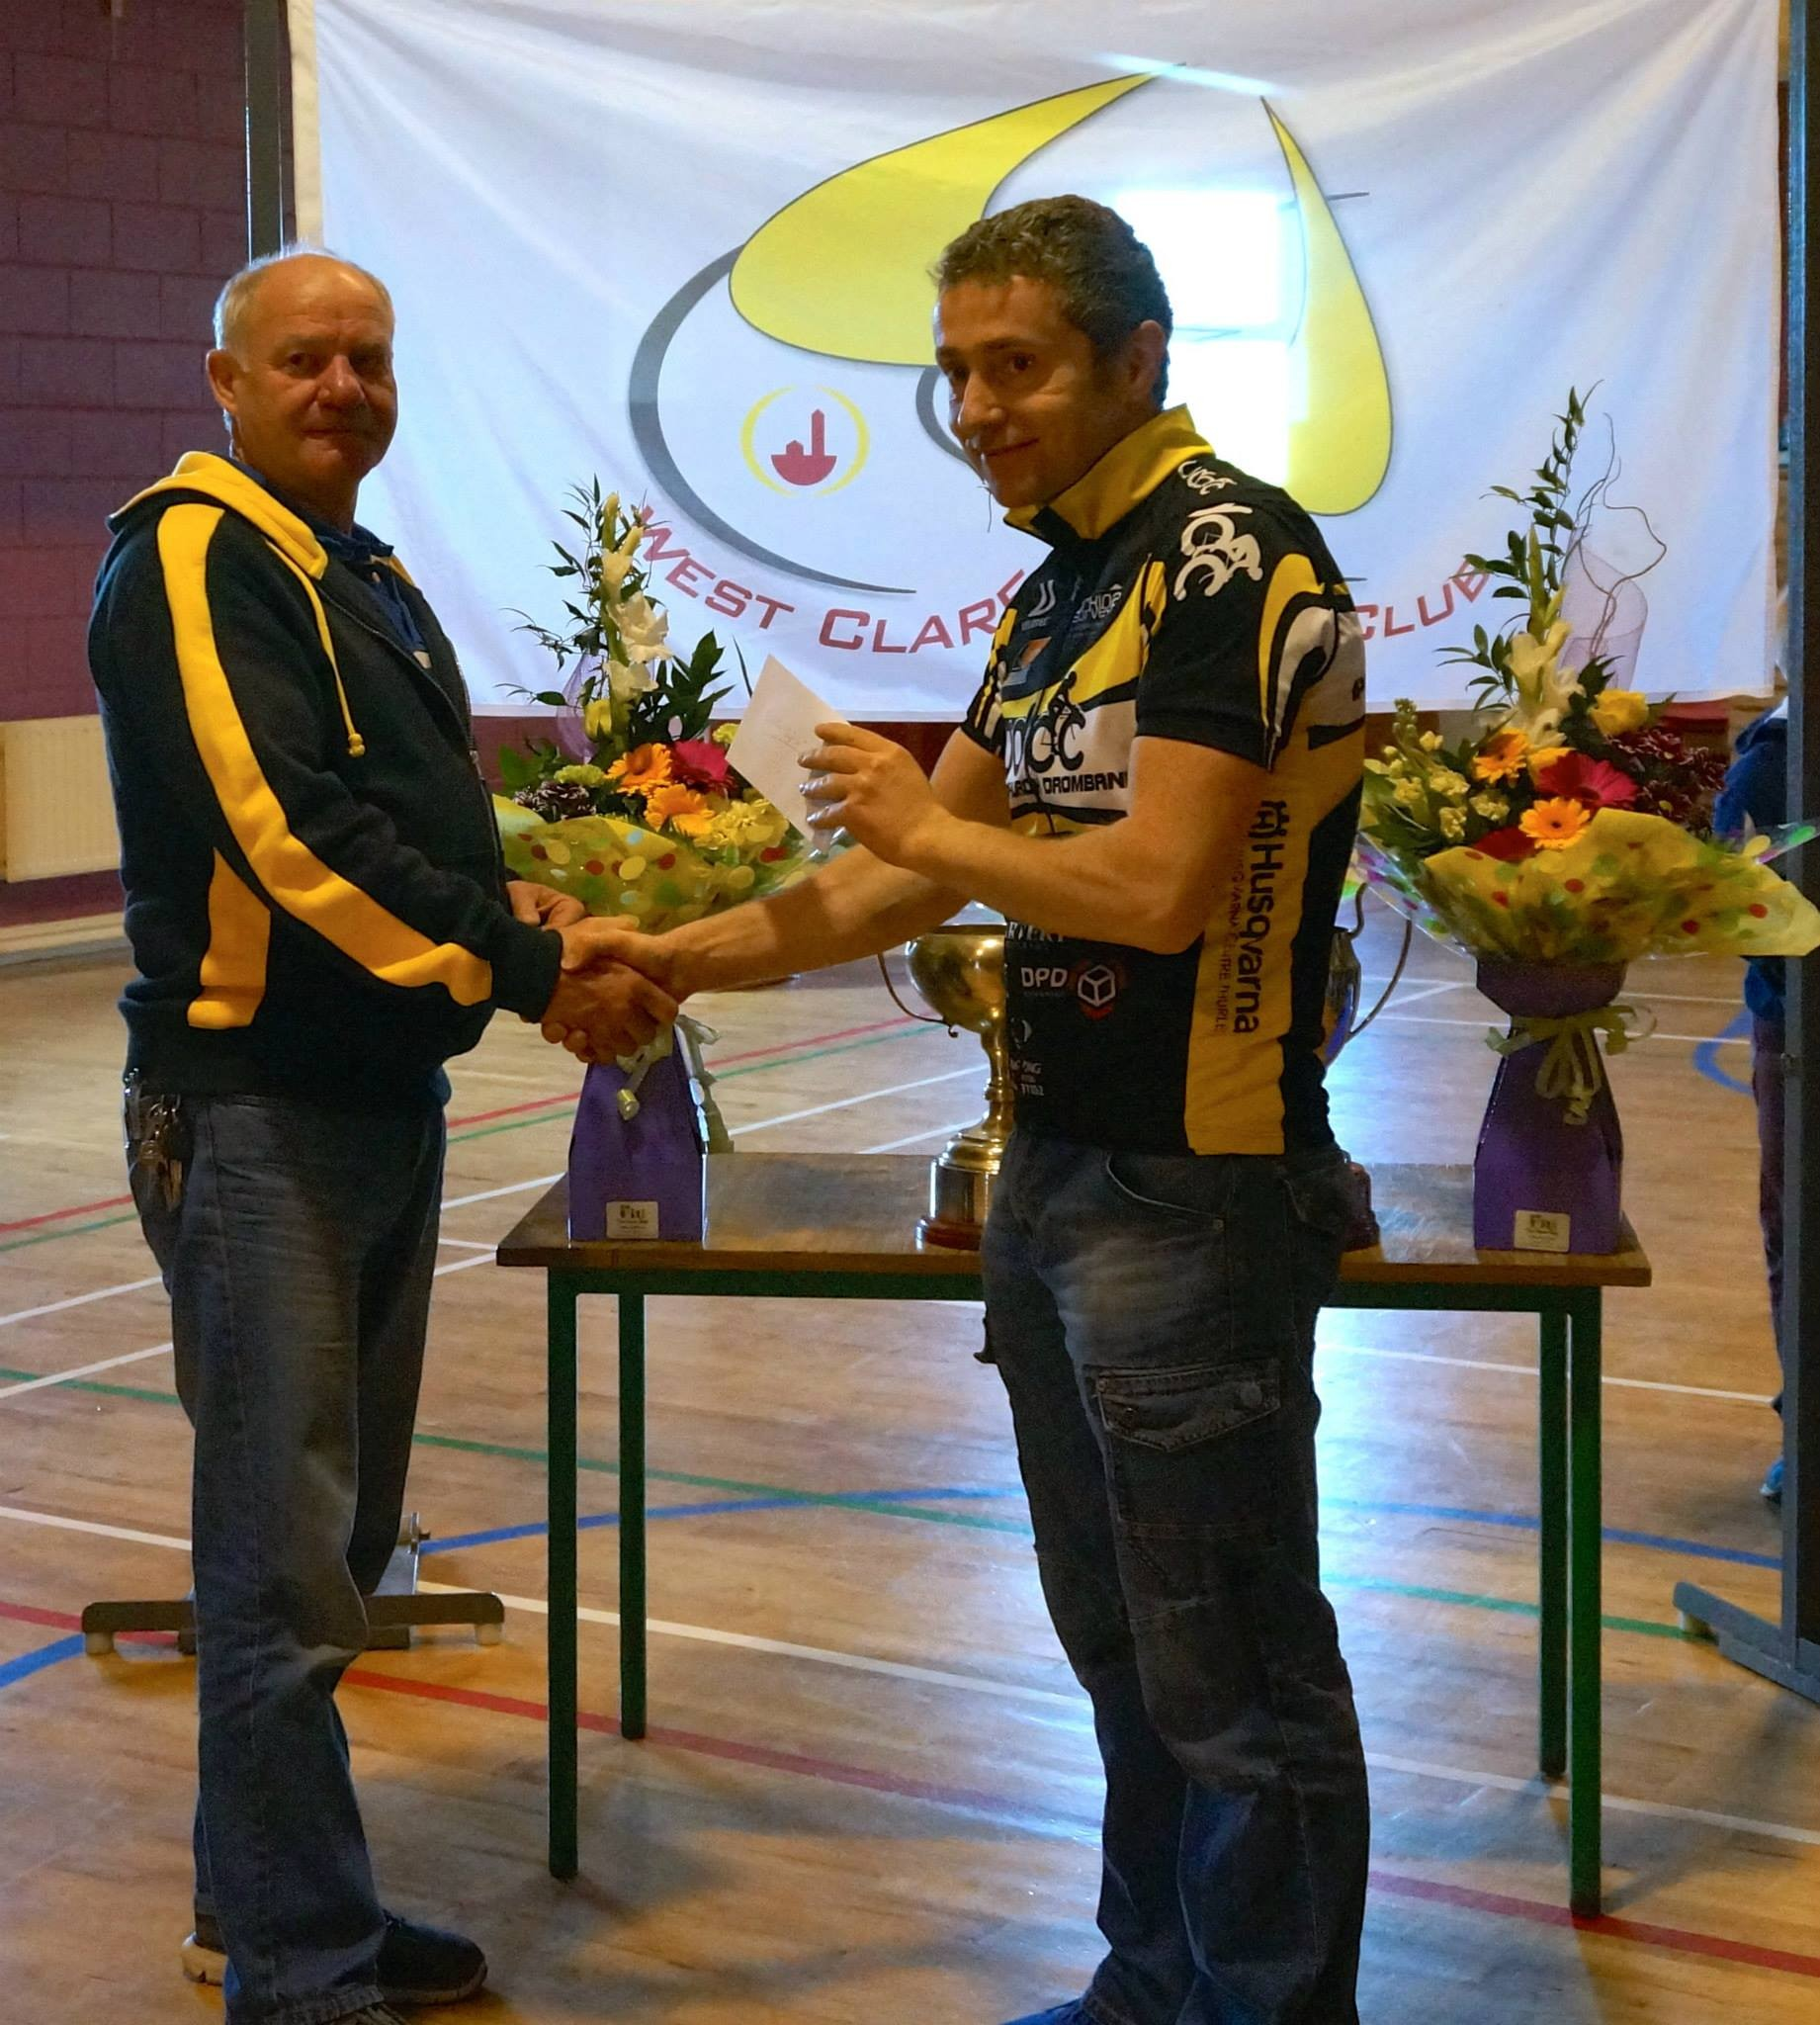 Ken Costello is presented with 4th place prize